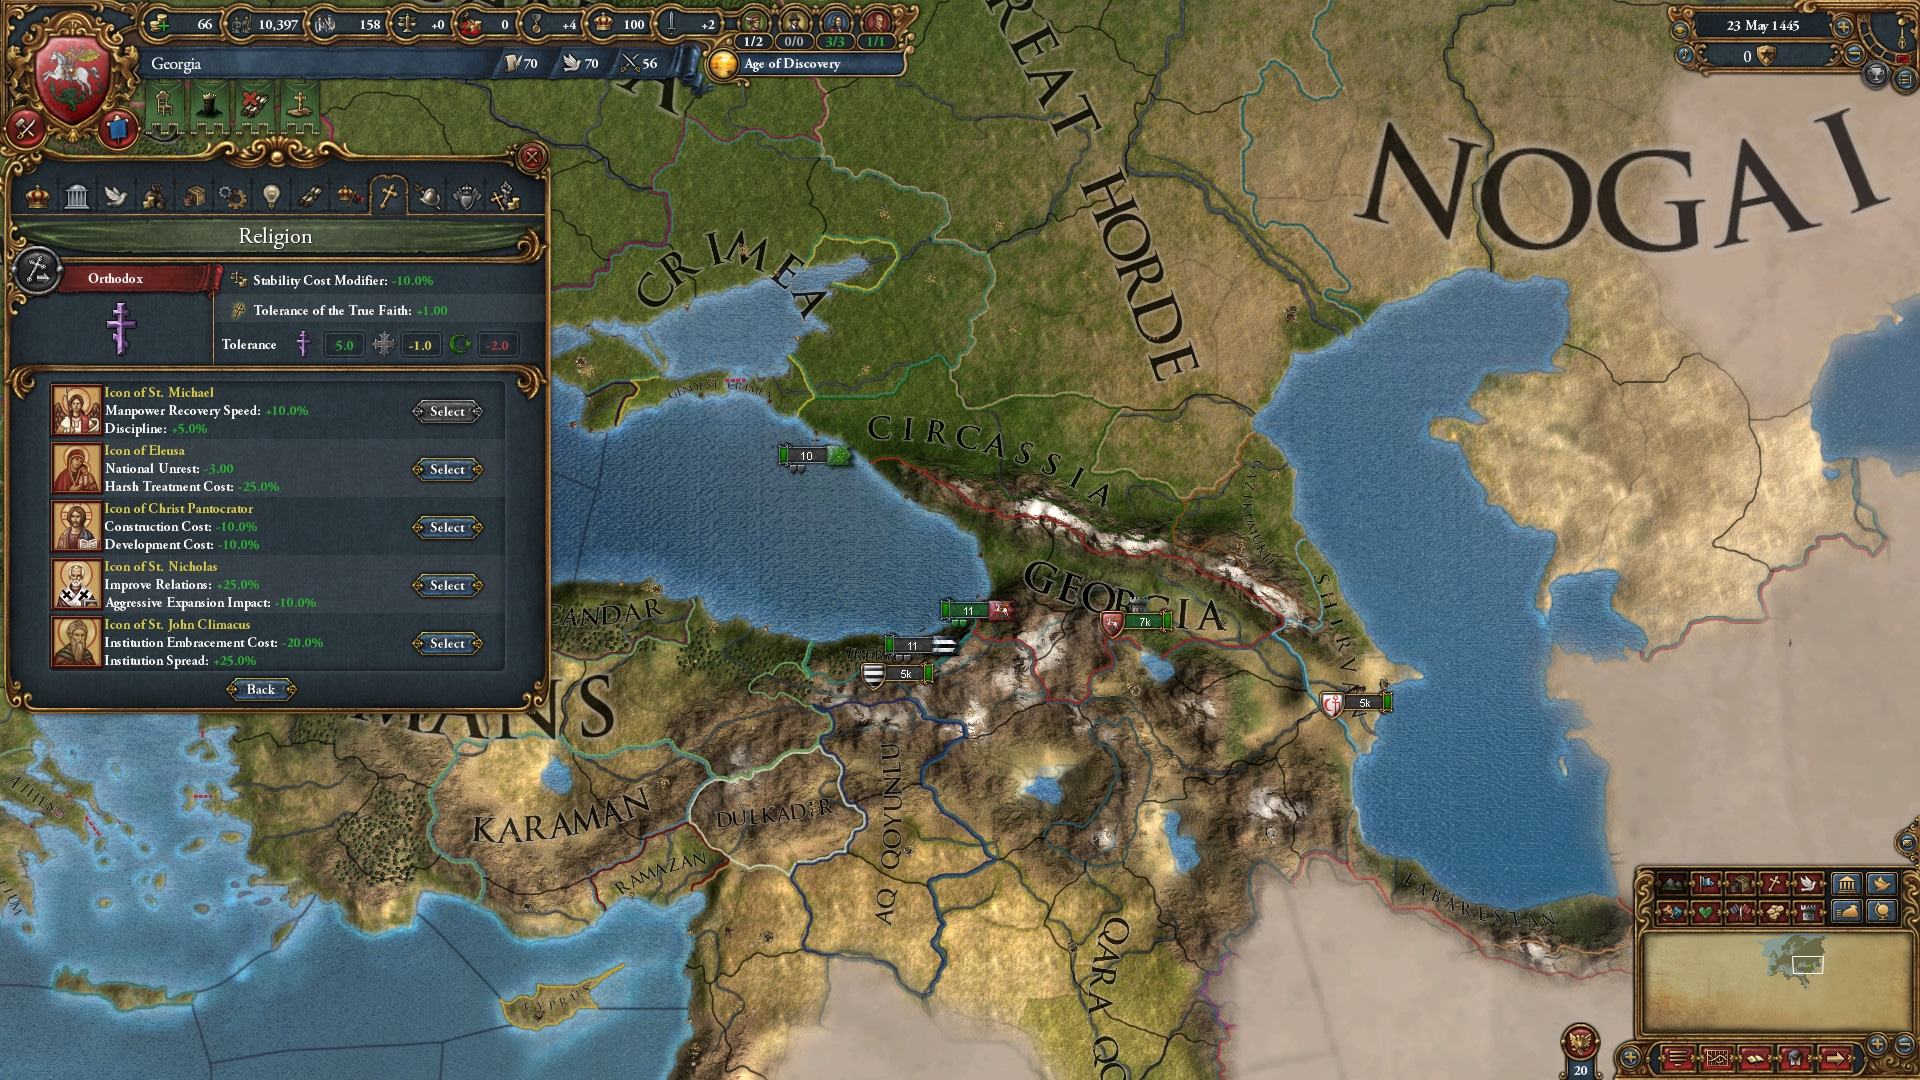 Immersion Pack - Europa Universalis IV: Third Rome Steam Key GLOBAL - 3